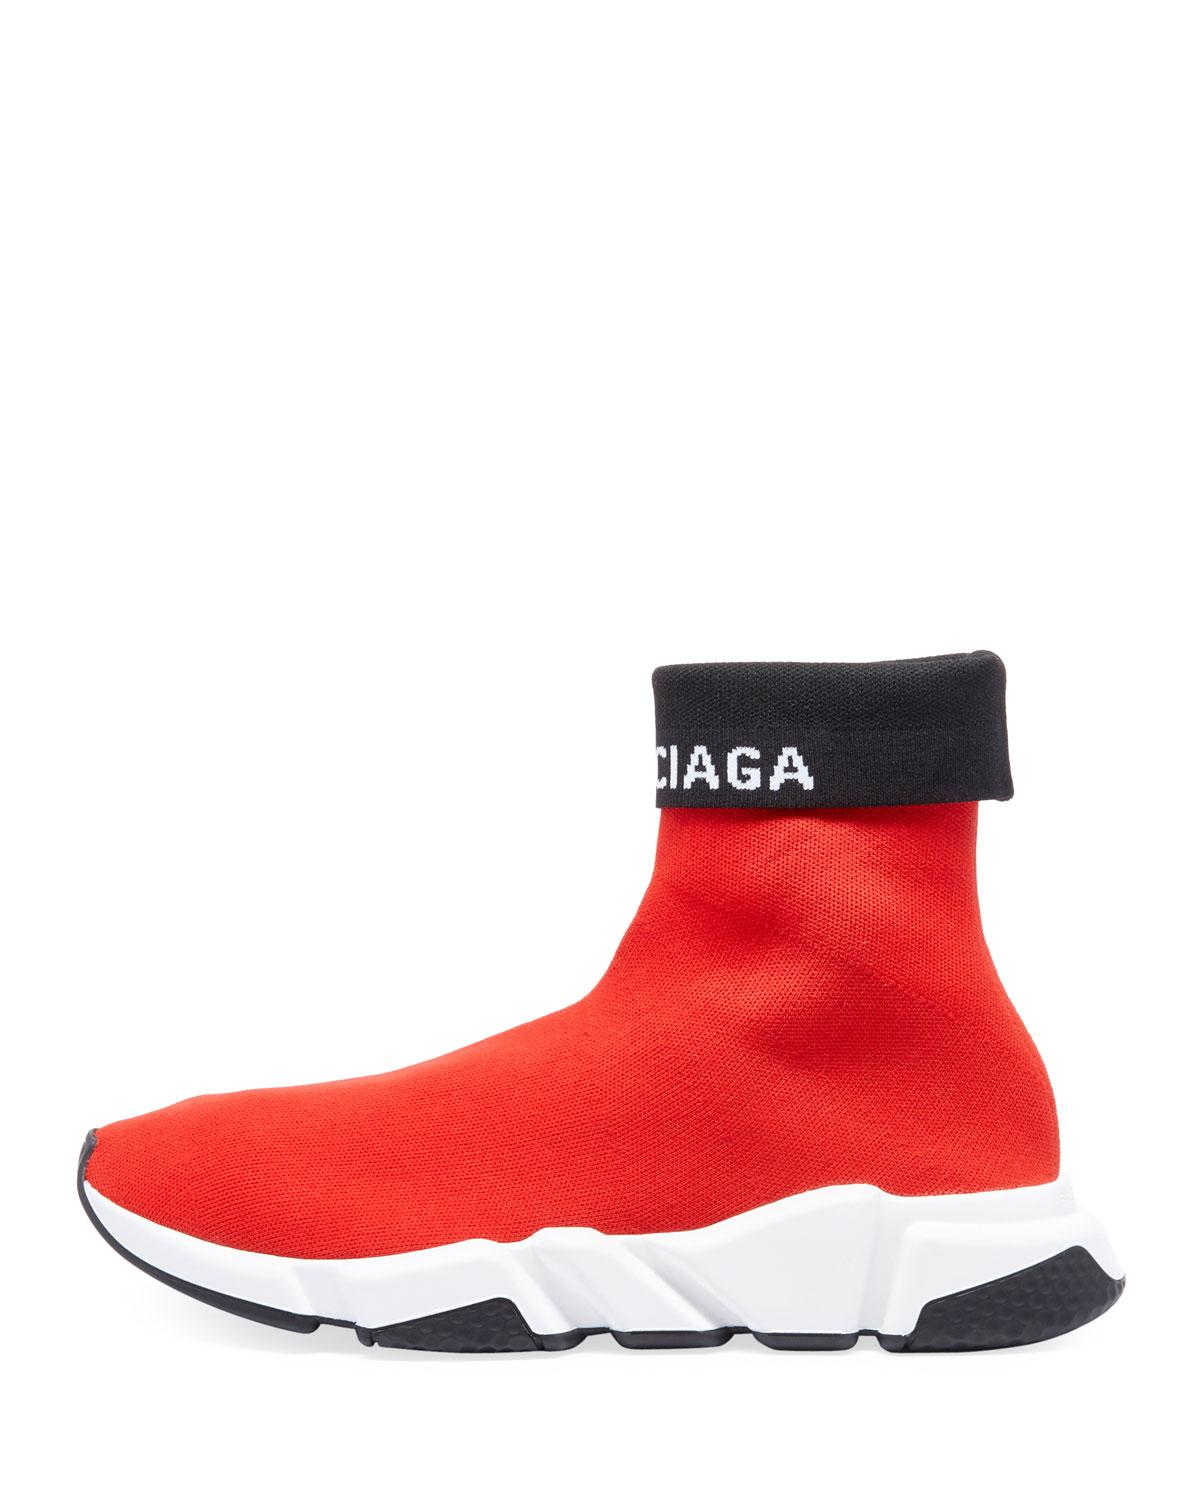 3b2b5cd3ca83 Balenciaga Speed Trainers Cuffed in Red for Men - Save 12% - Lyst